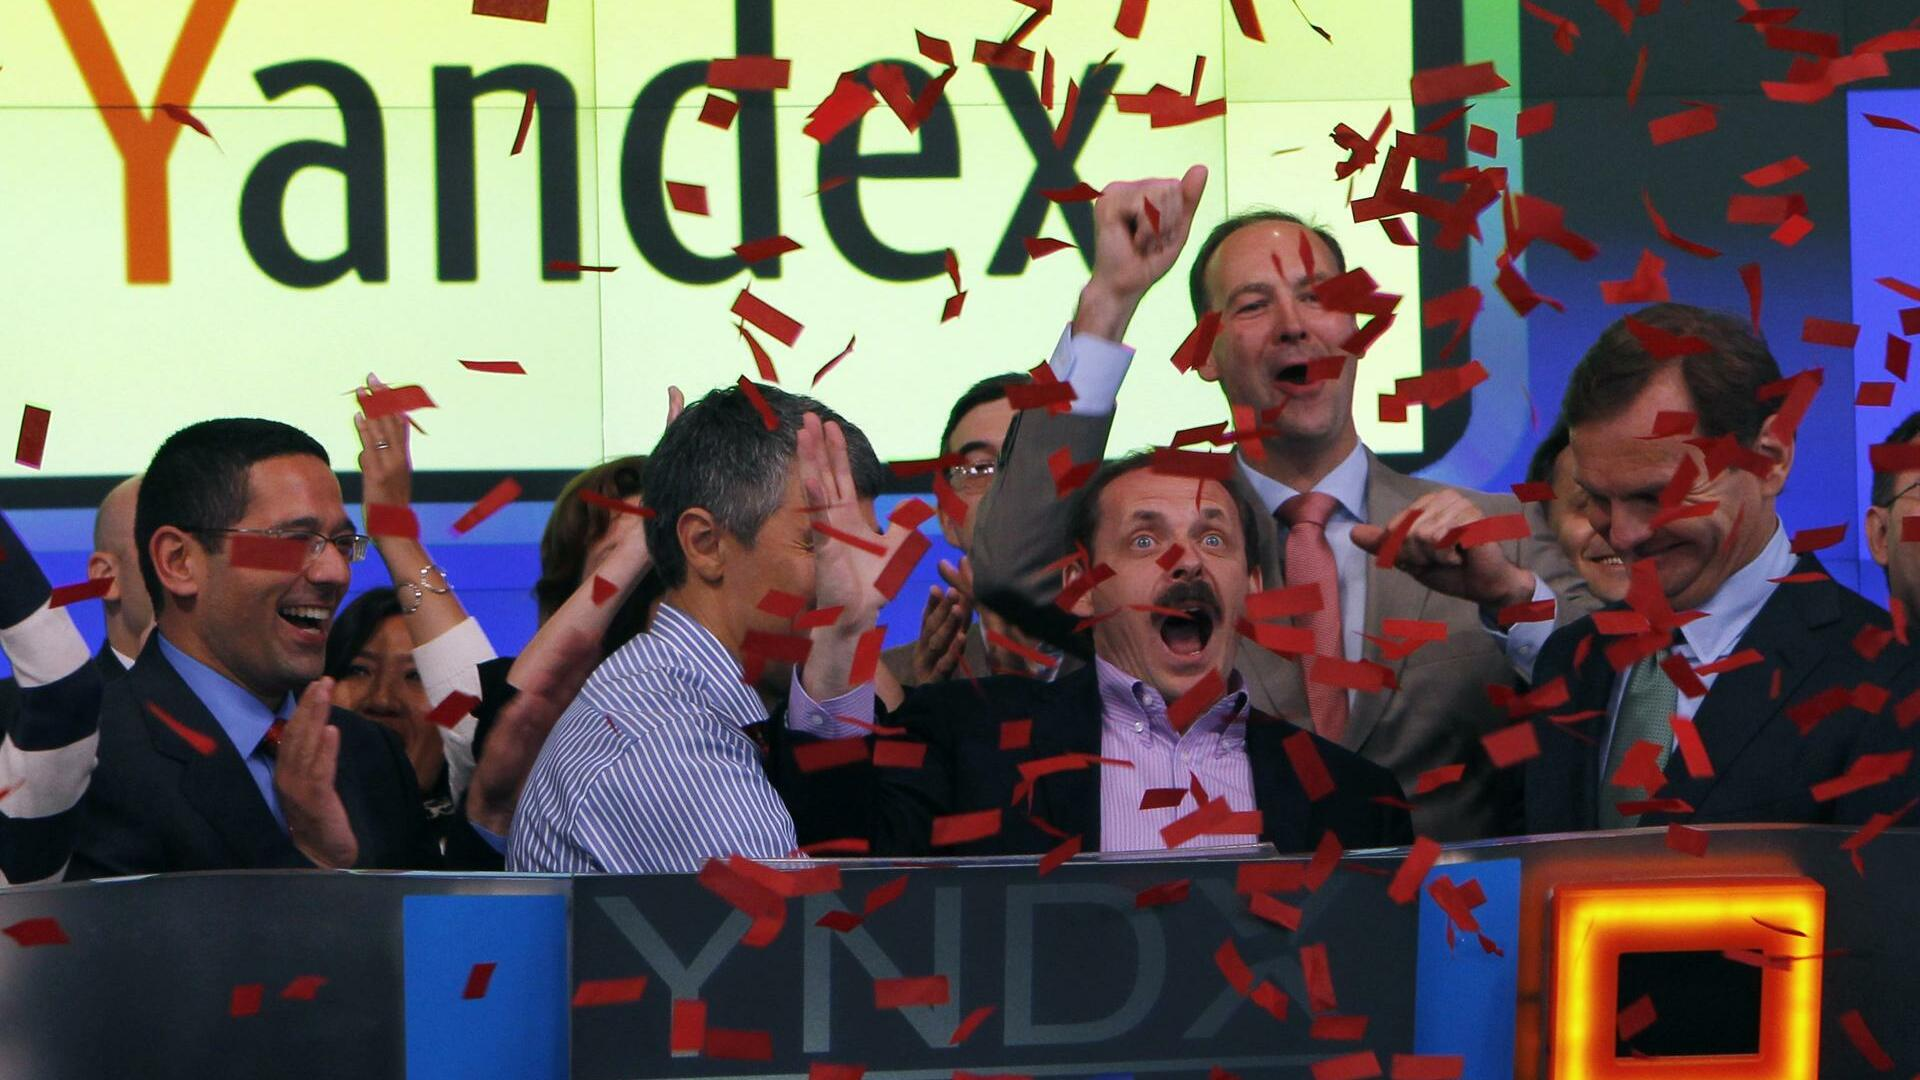 Yandex Quelle: REUTERS